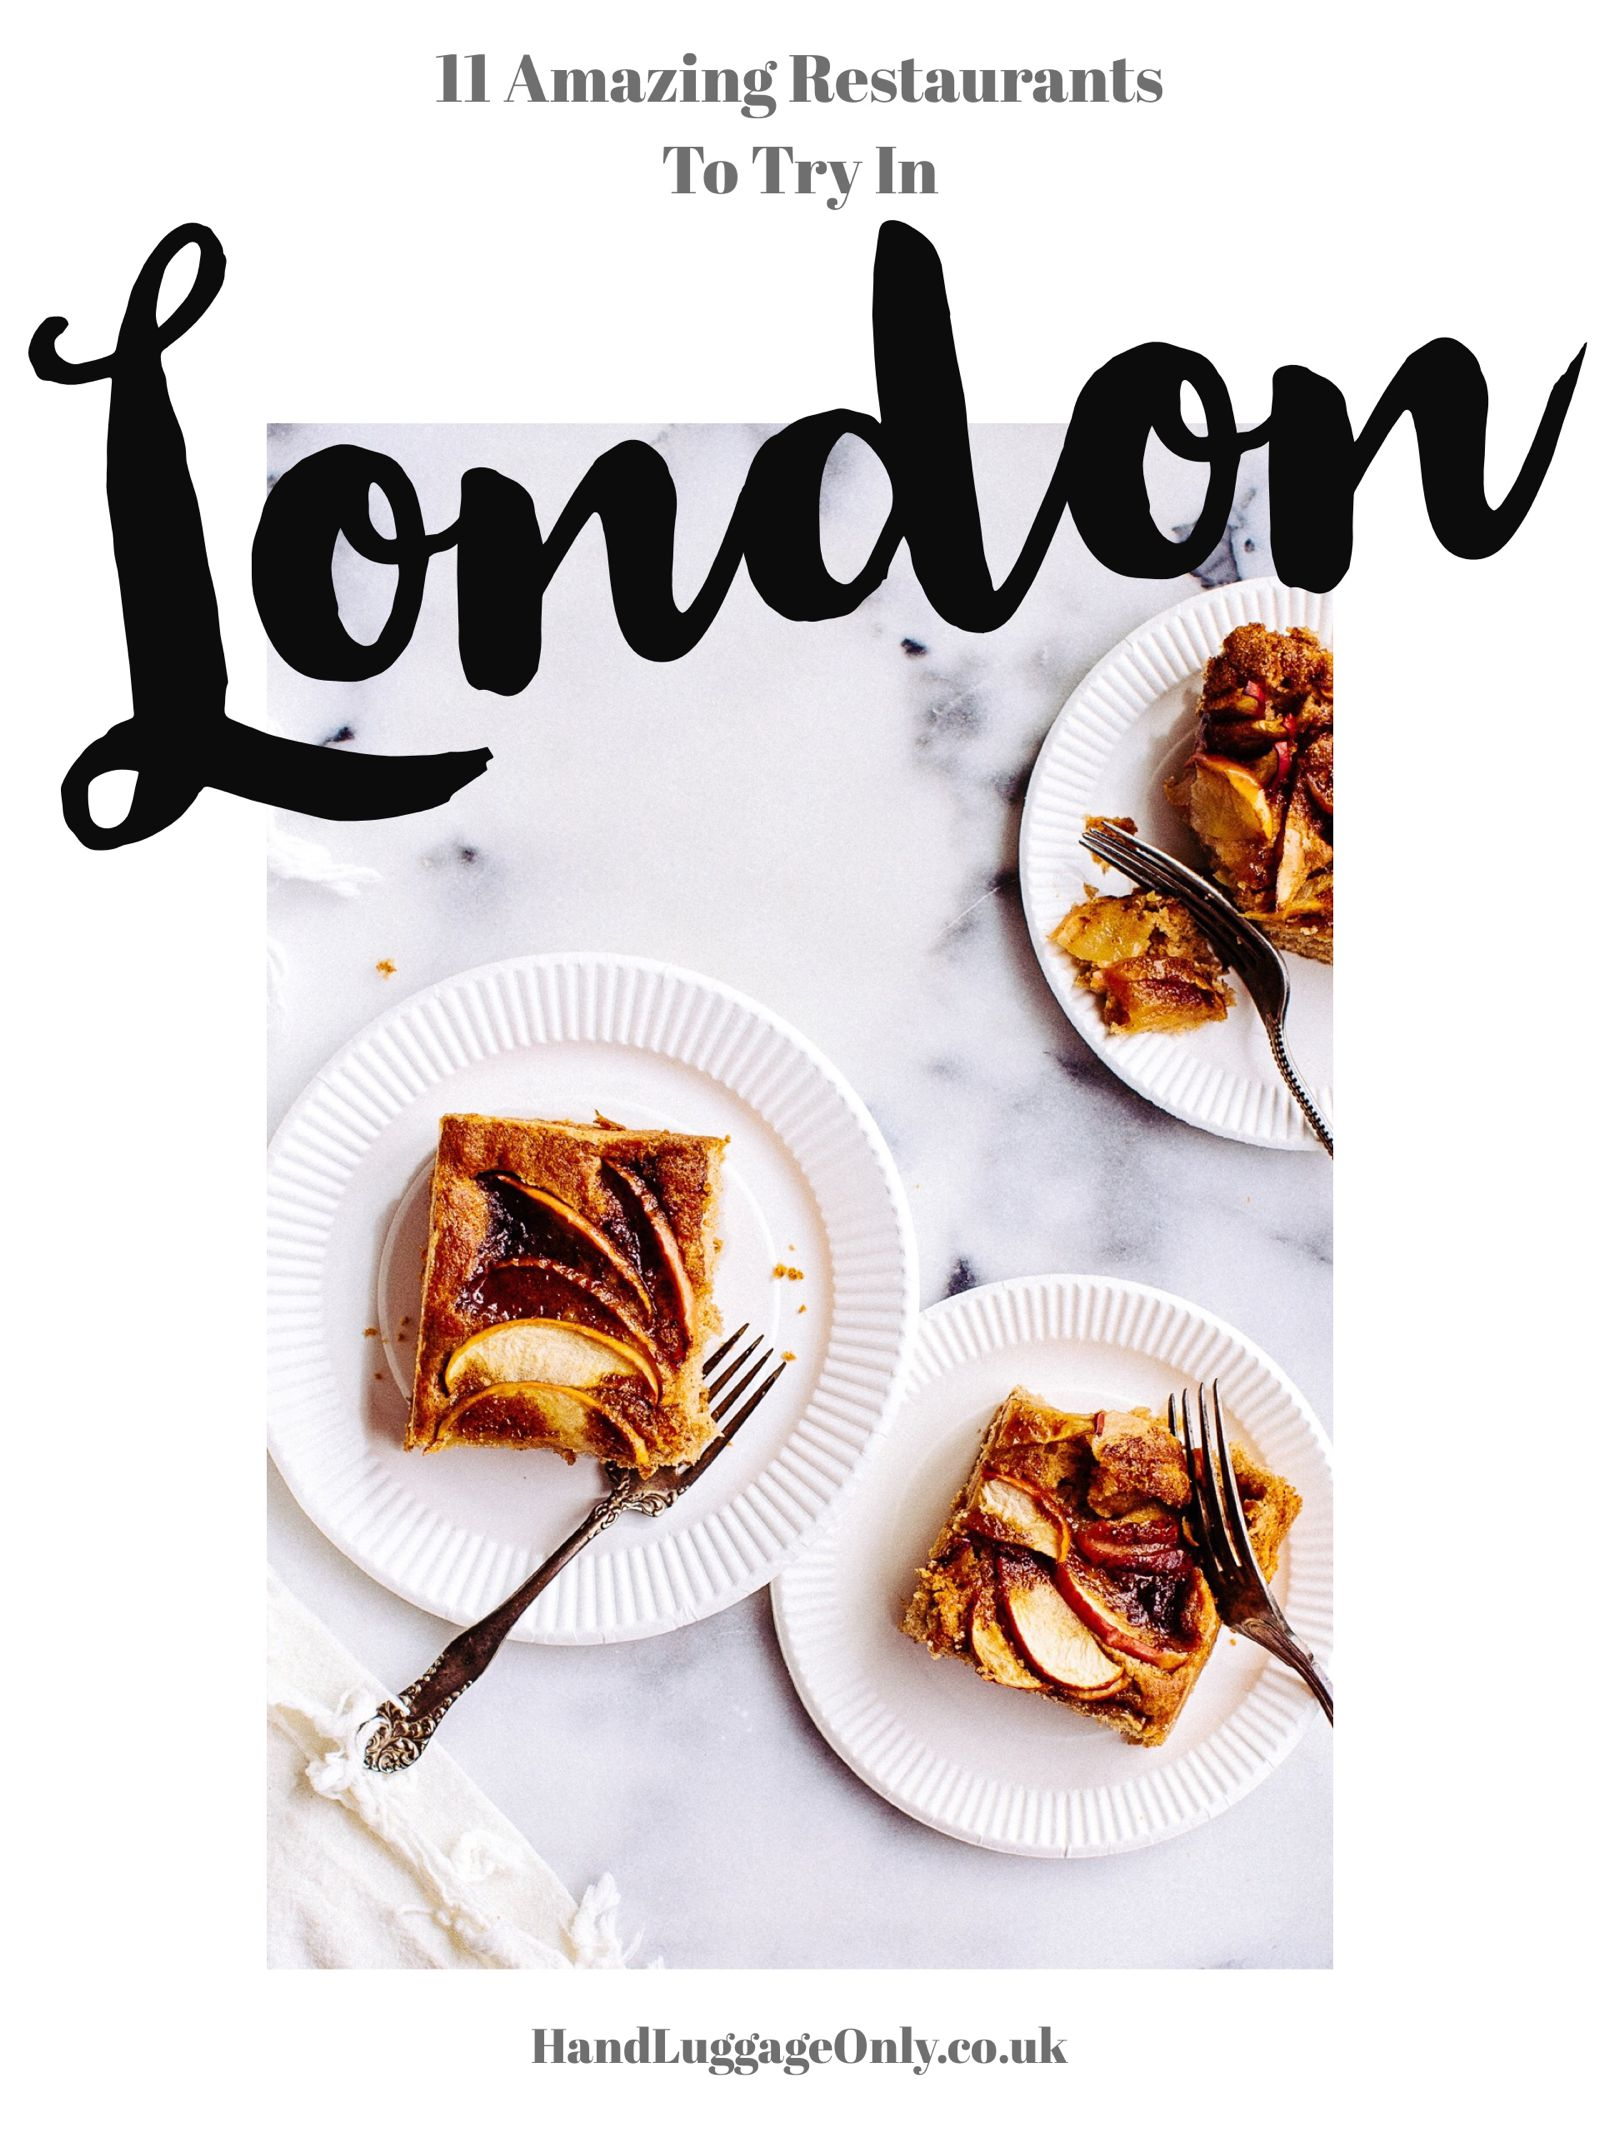 11 Amazing Places To Eat In London (25)